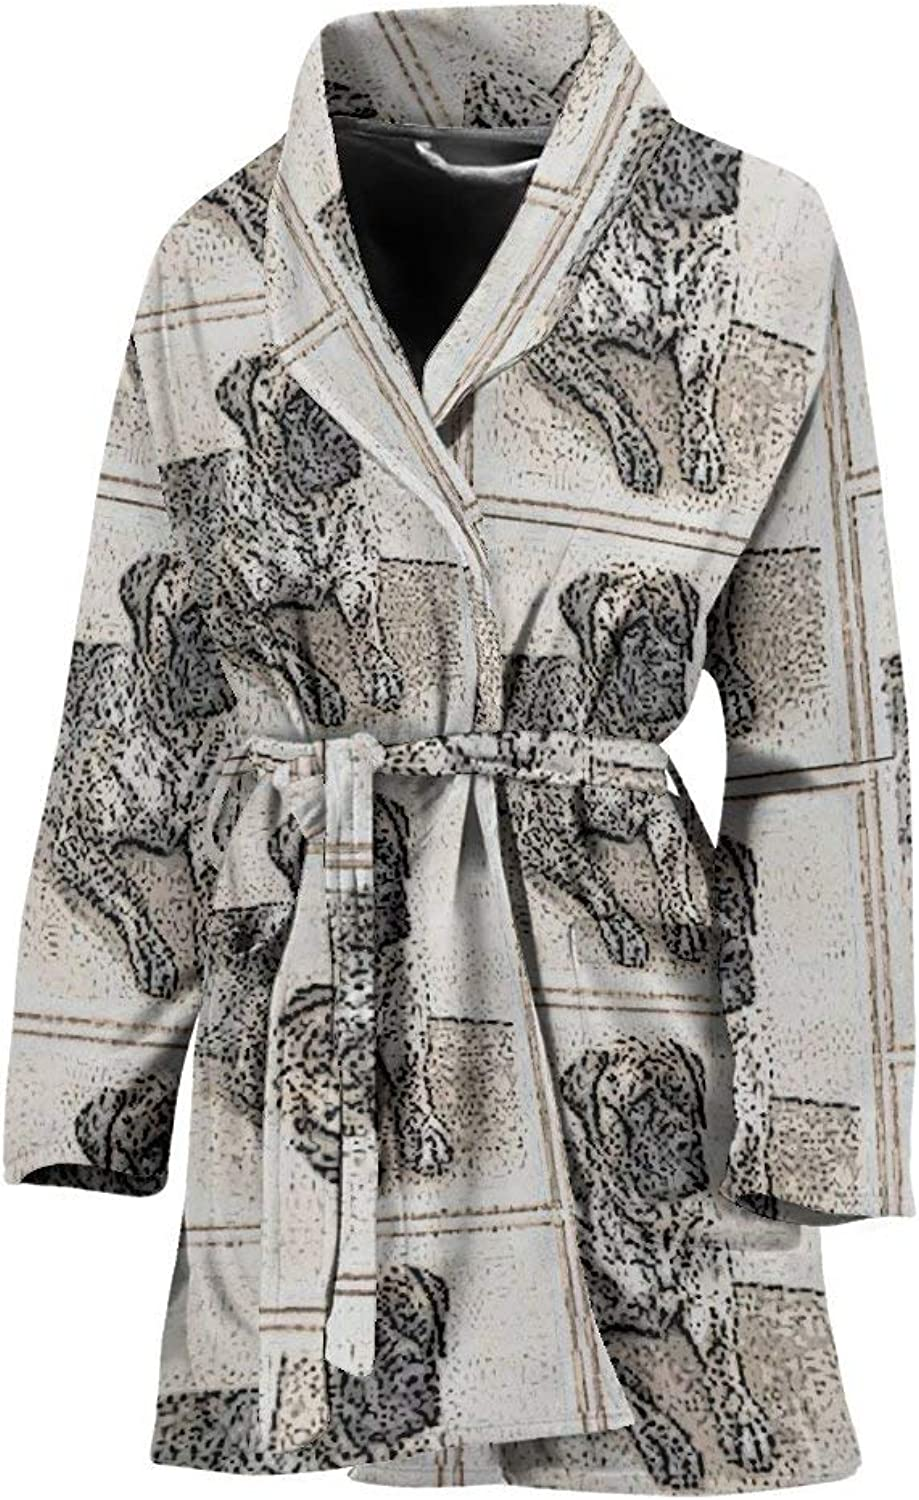 Deruj English Mastiff Patterns Print Women's Bath Robe